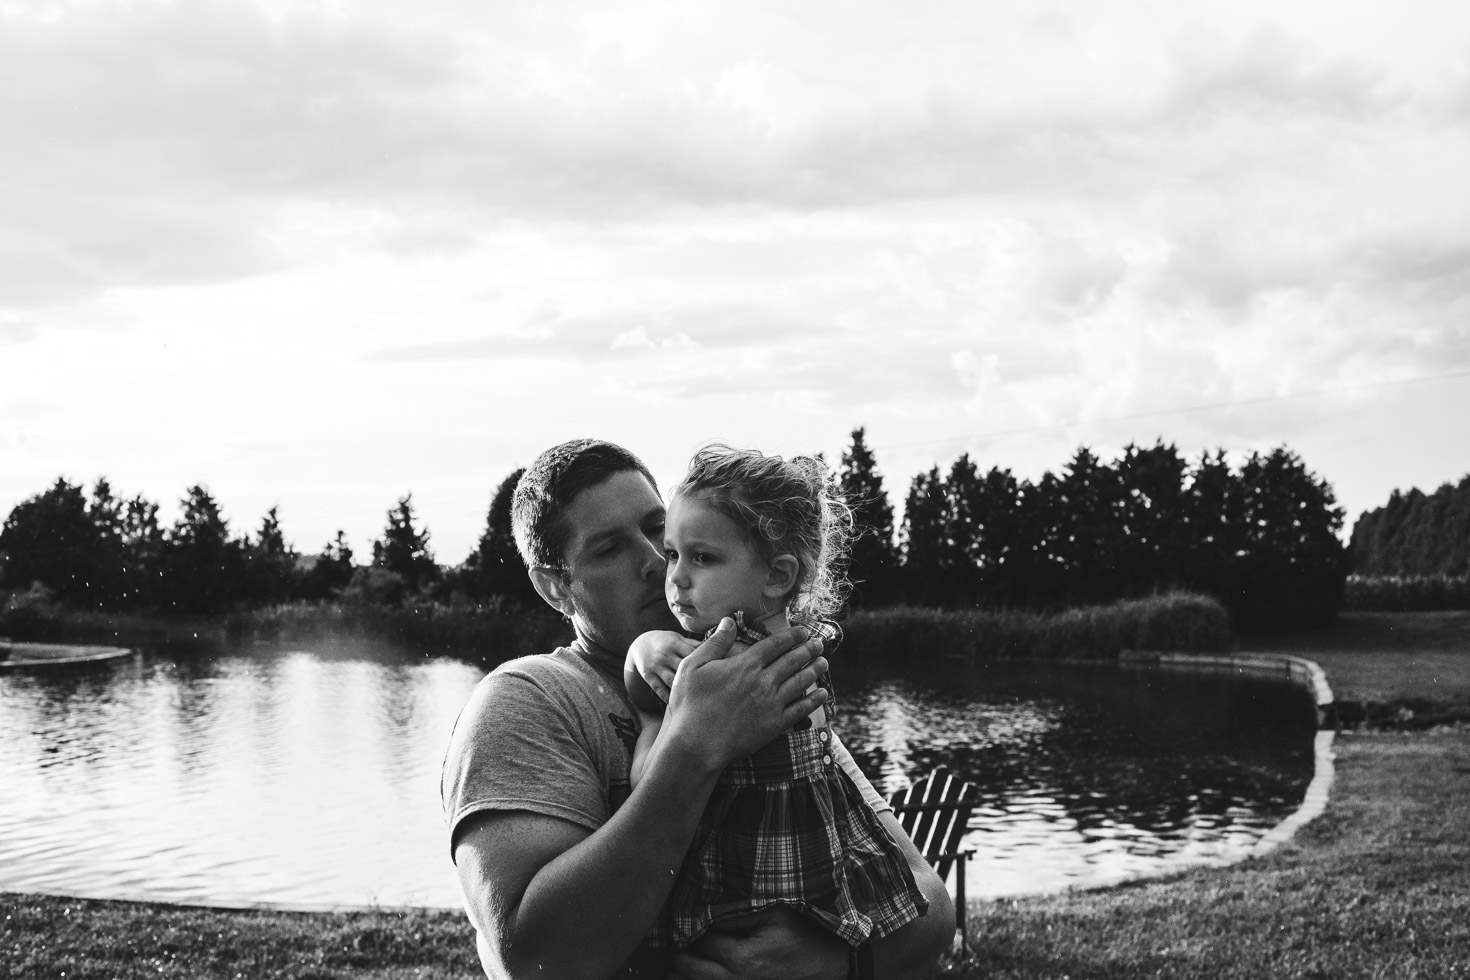 Father embracing daughter, country field in front of lake, connection, powerful black and white